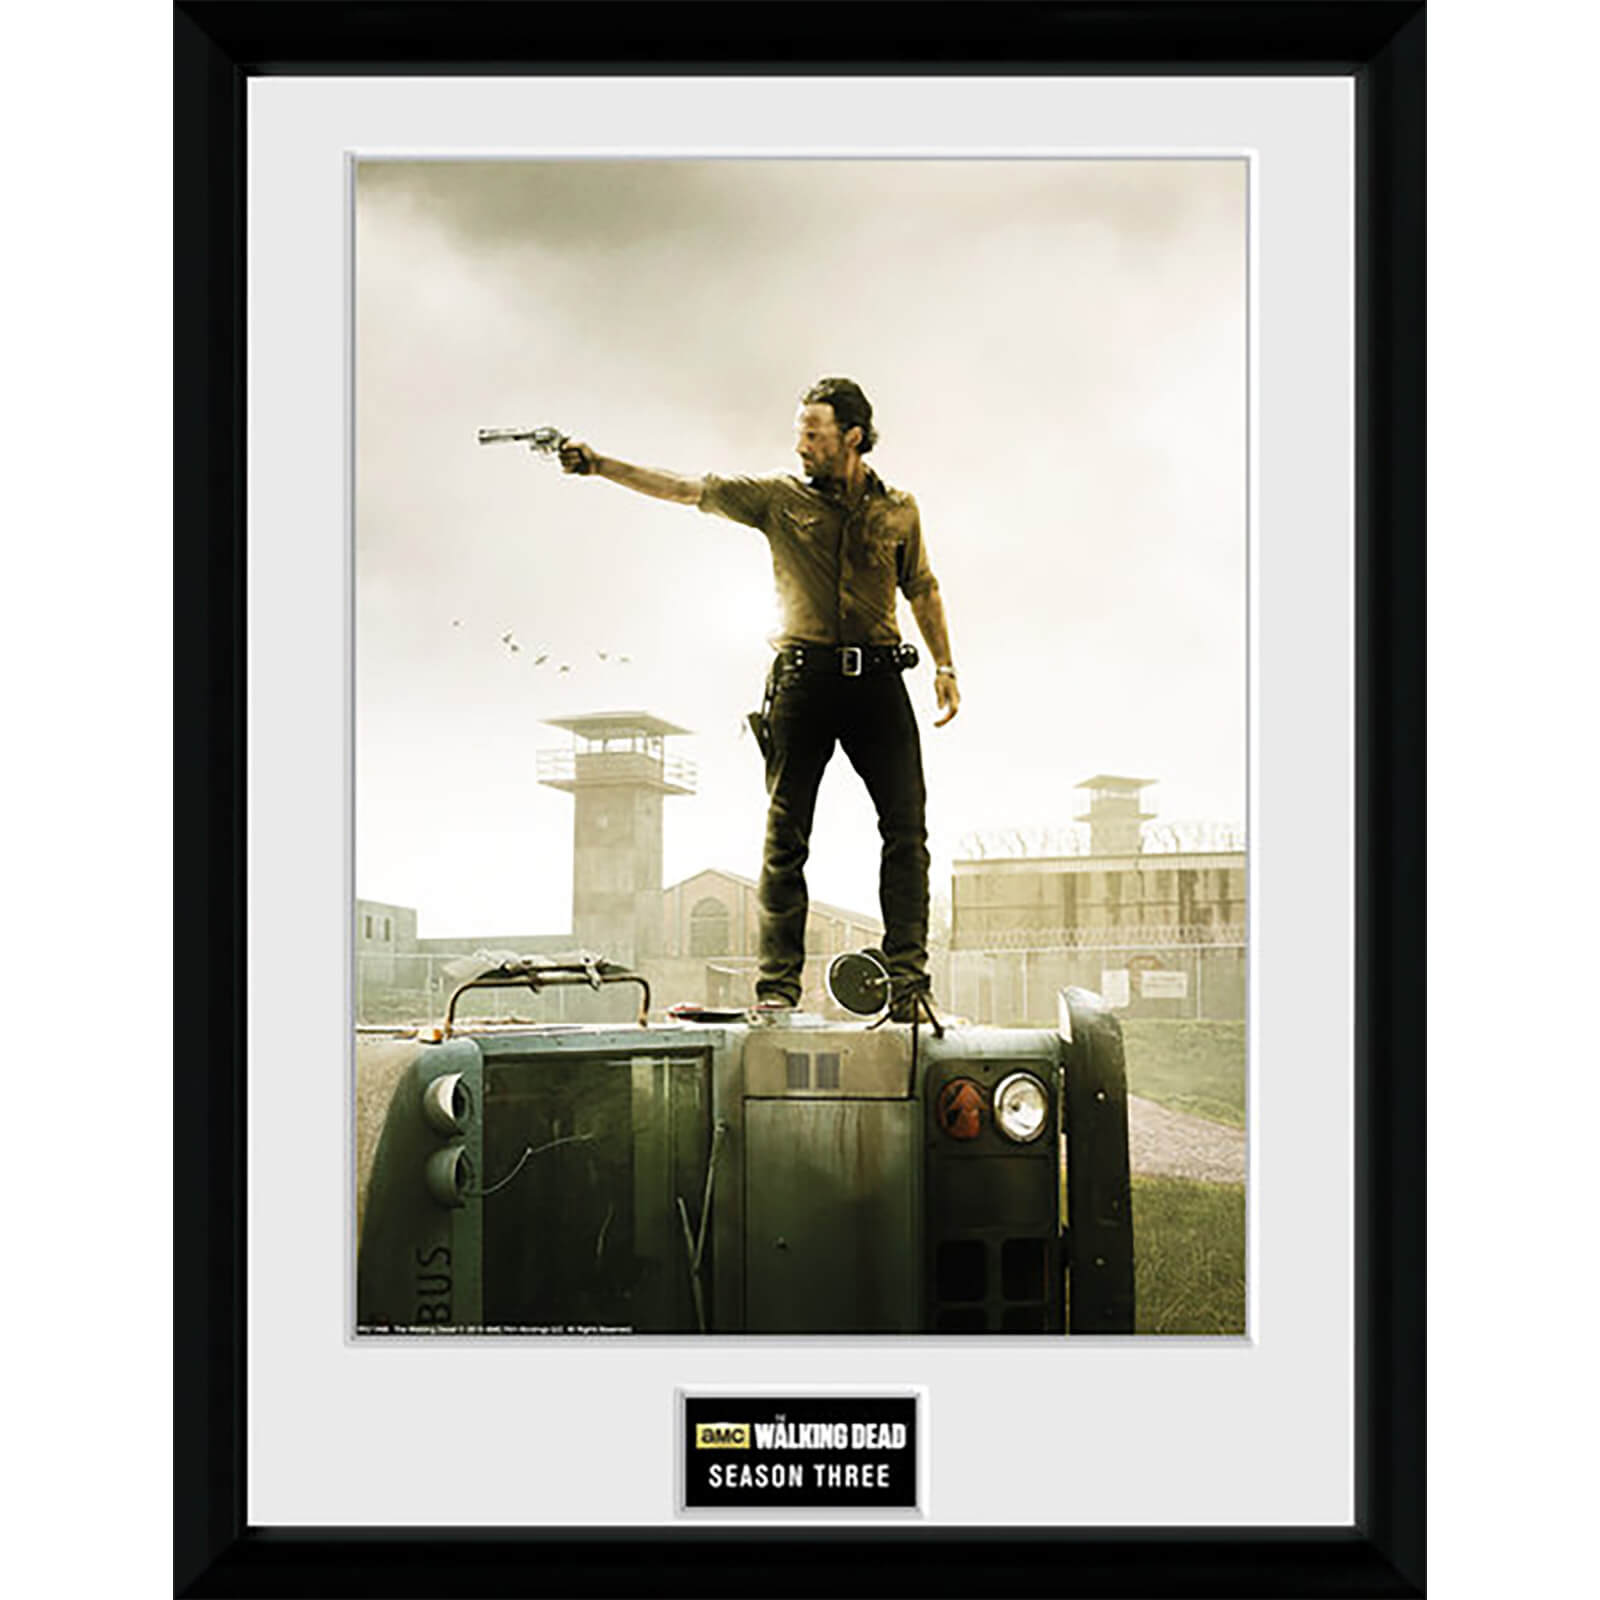 The Walking Dead Season 3 - 16 x 12 Inches Framed Photographic